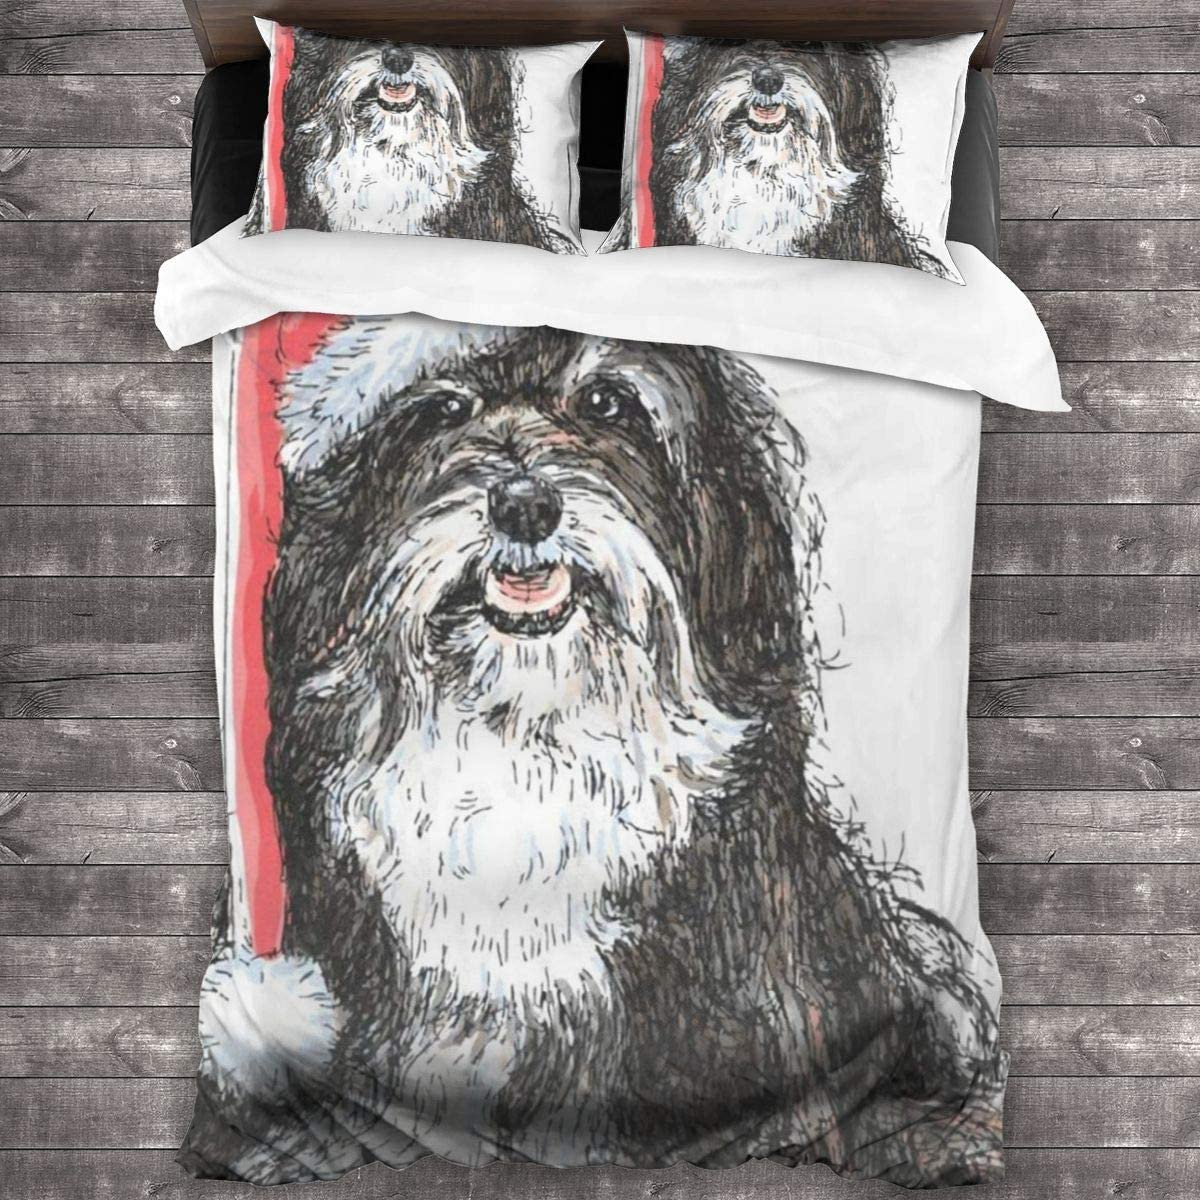 N\ A 3 Pieces Duvet Cover Set (1 Quilt Cover + 2 Pillowcases) Shih Tzu Dog Extra Long Twin Size Breathable Bedding Comforter Sets Room Decor for Kids Girls Boys Teens